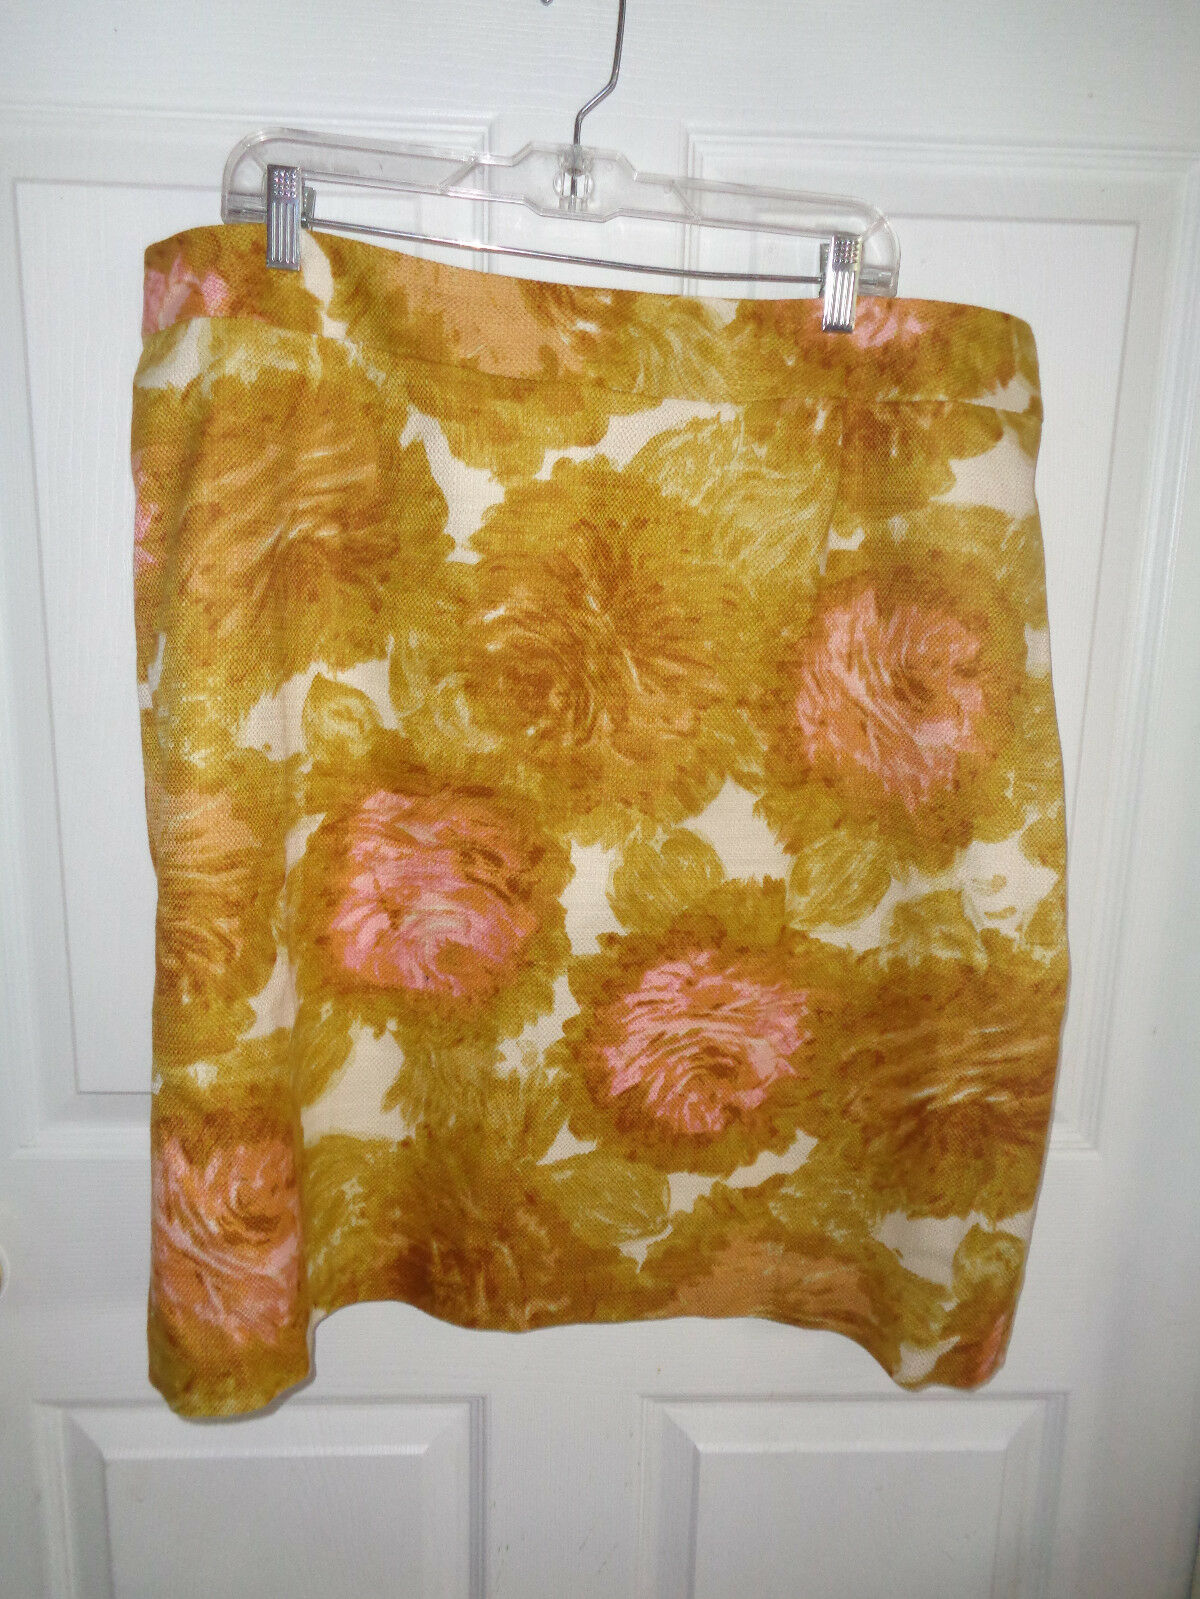 Talbots Woman - Green Yellow Floral- Lined - Cotton Skirt - Size 20W